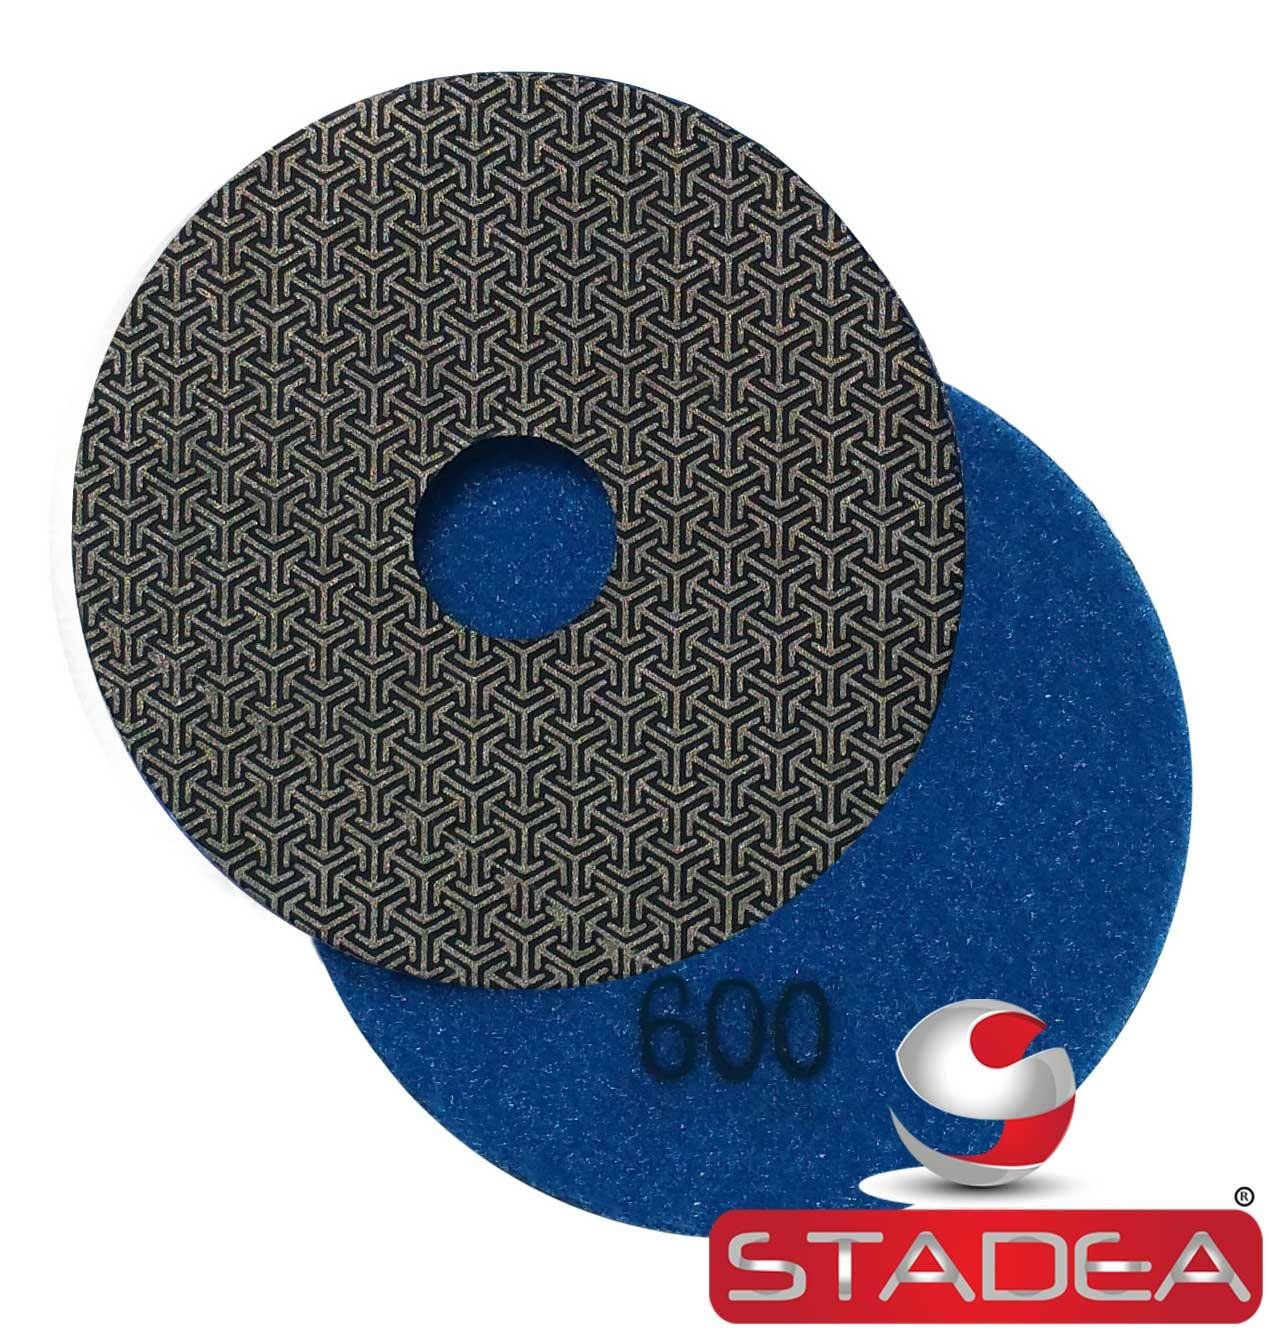 Stadea PPE118 Electroplated Diamond Polishing Pads 4'' Glass Concrete Marble Granite Wet Dry Diamond Fine Sandpaper Tool for Sanding Polishing Surfaces by STADEA